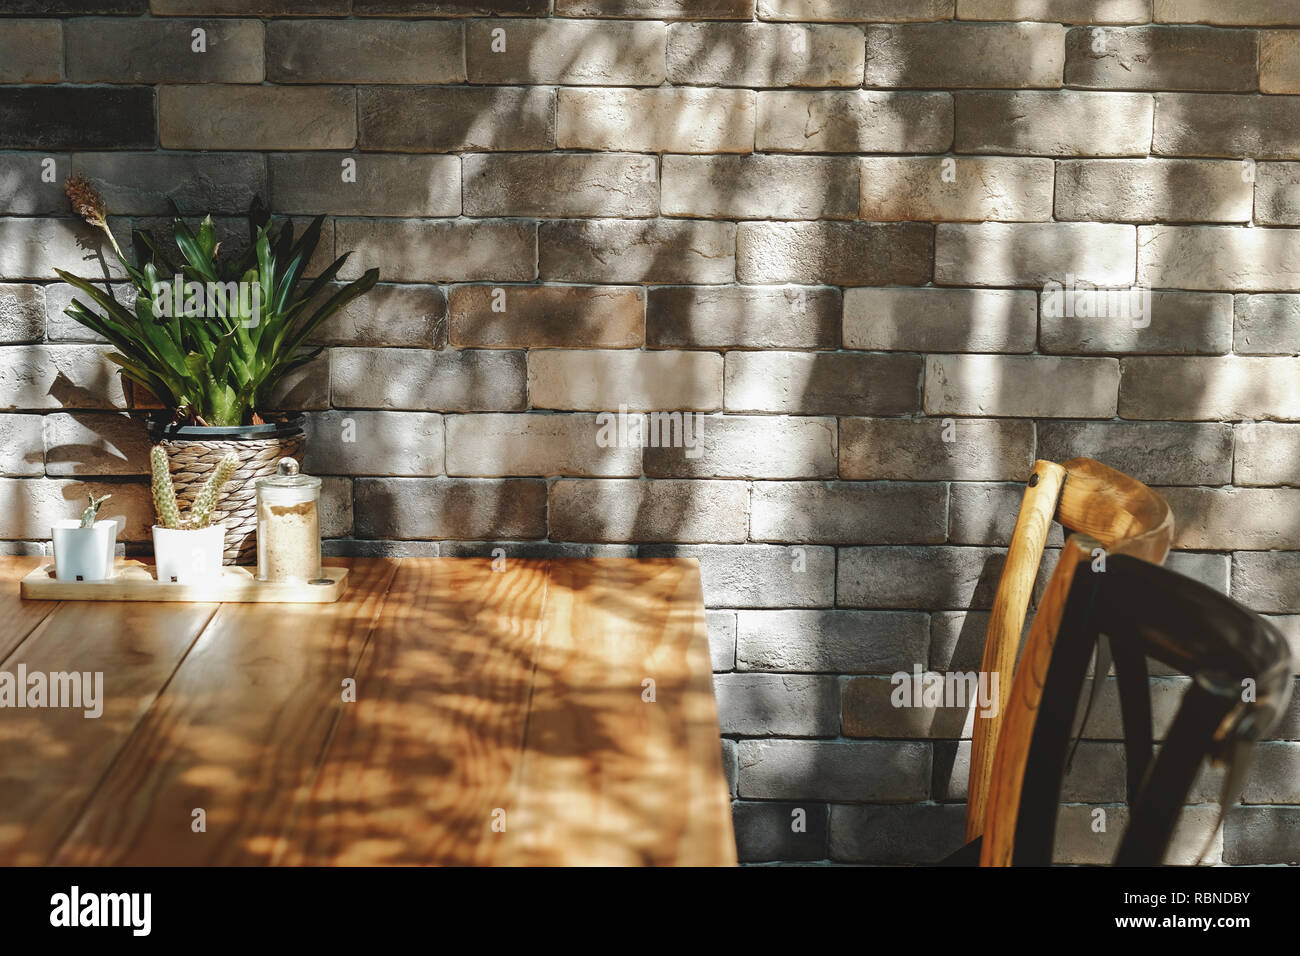 Brick Wall in Restaurant and Cafe, Contemporary Interior Design. Natural Daylight - Stock Image